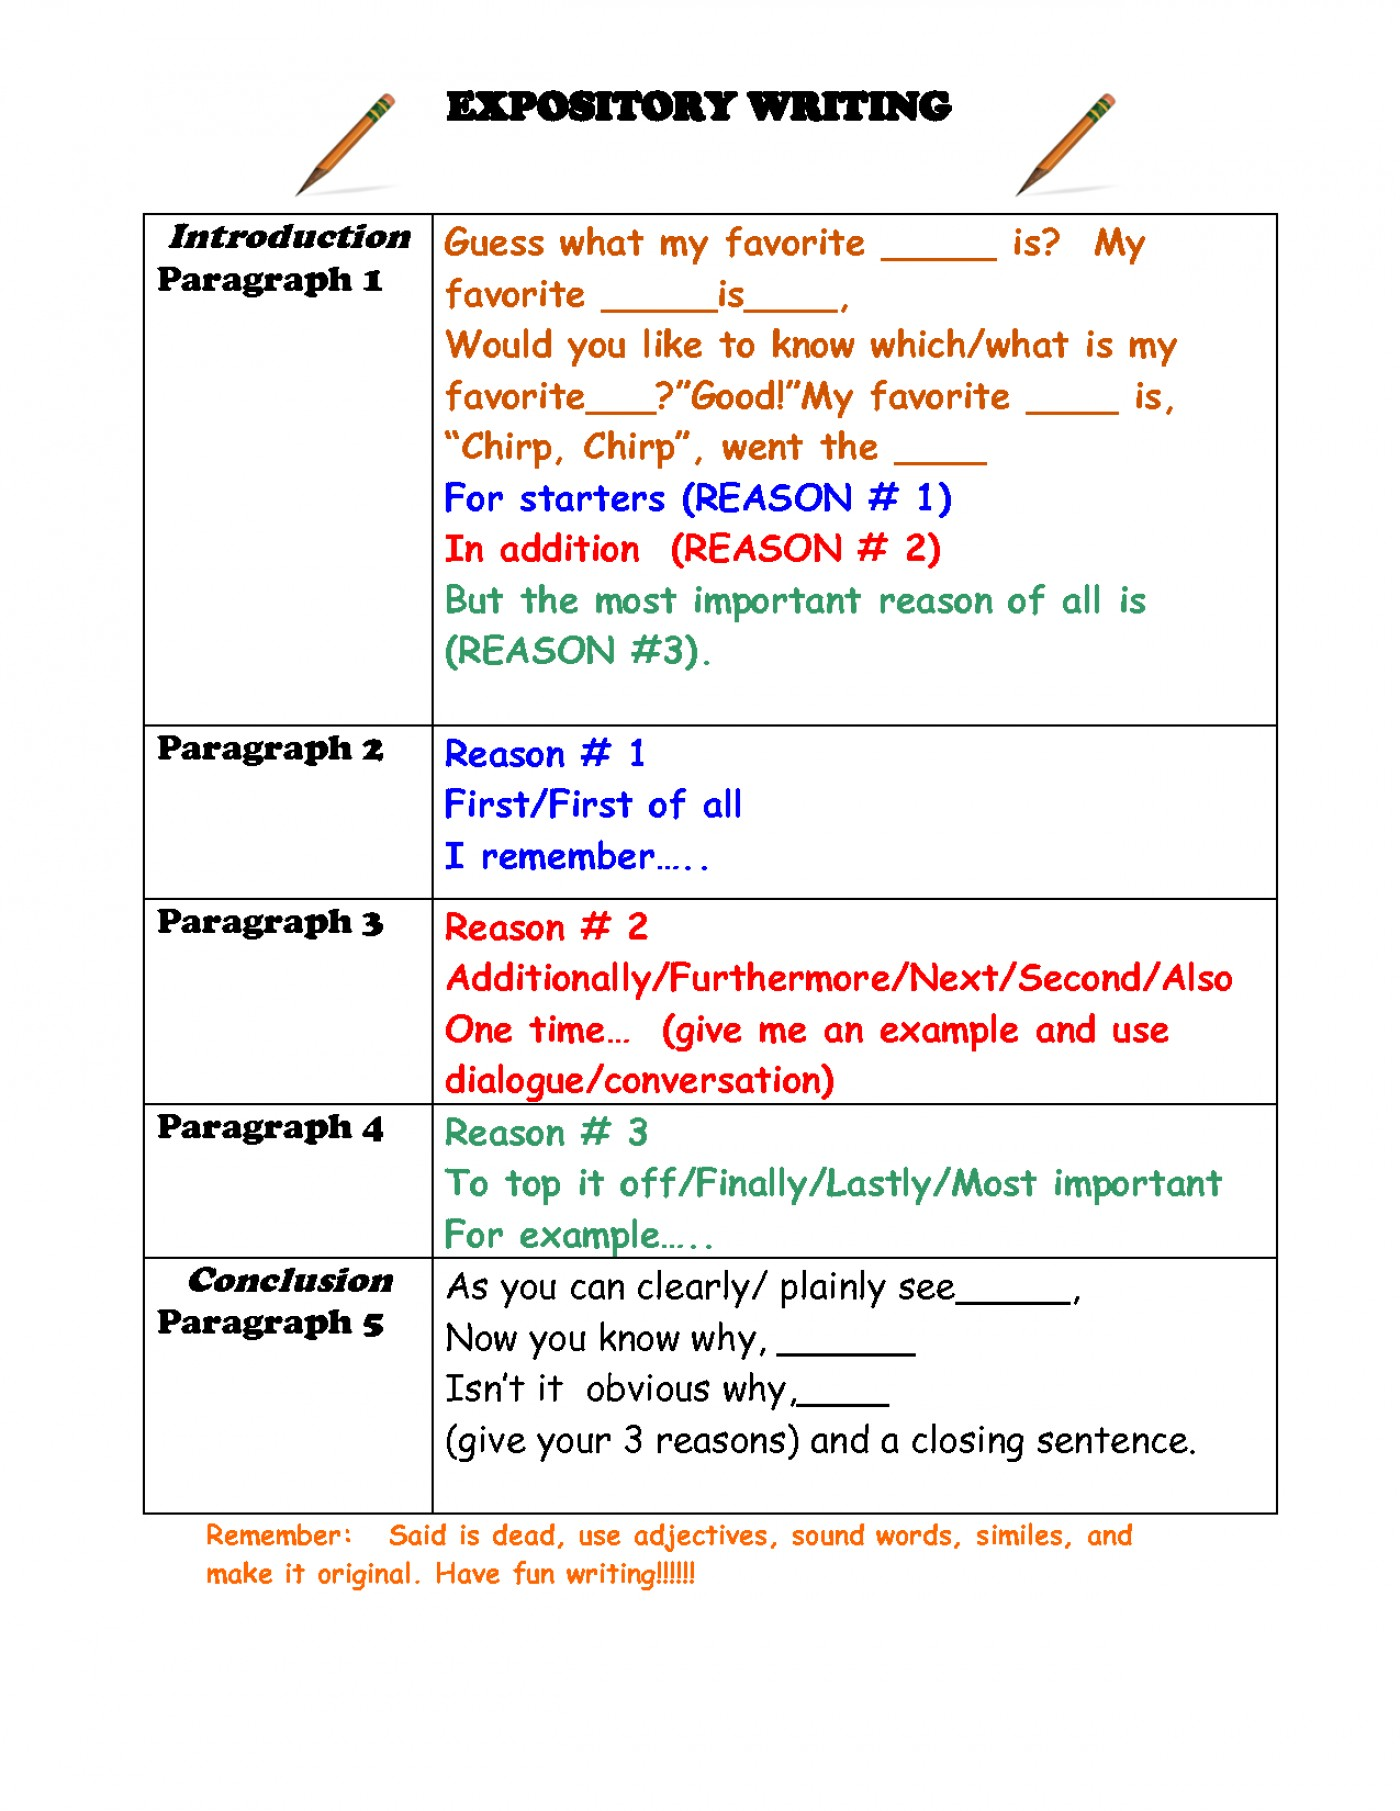 003 Conclusion Paragraph Examples Research Paper Write